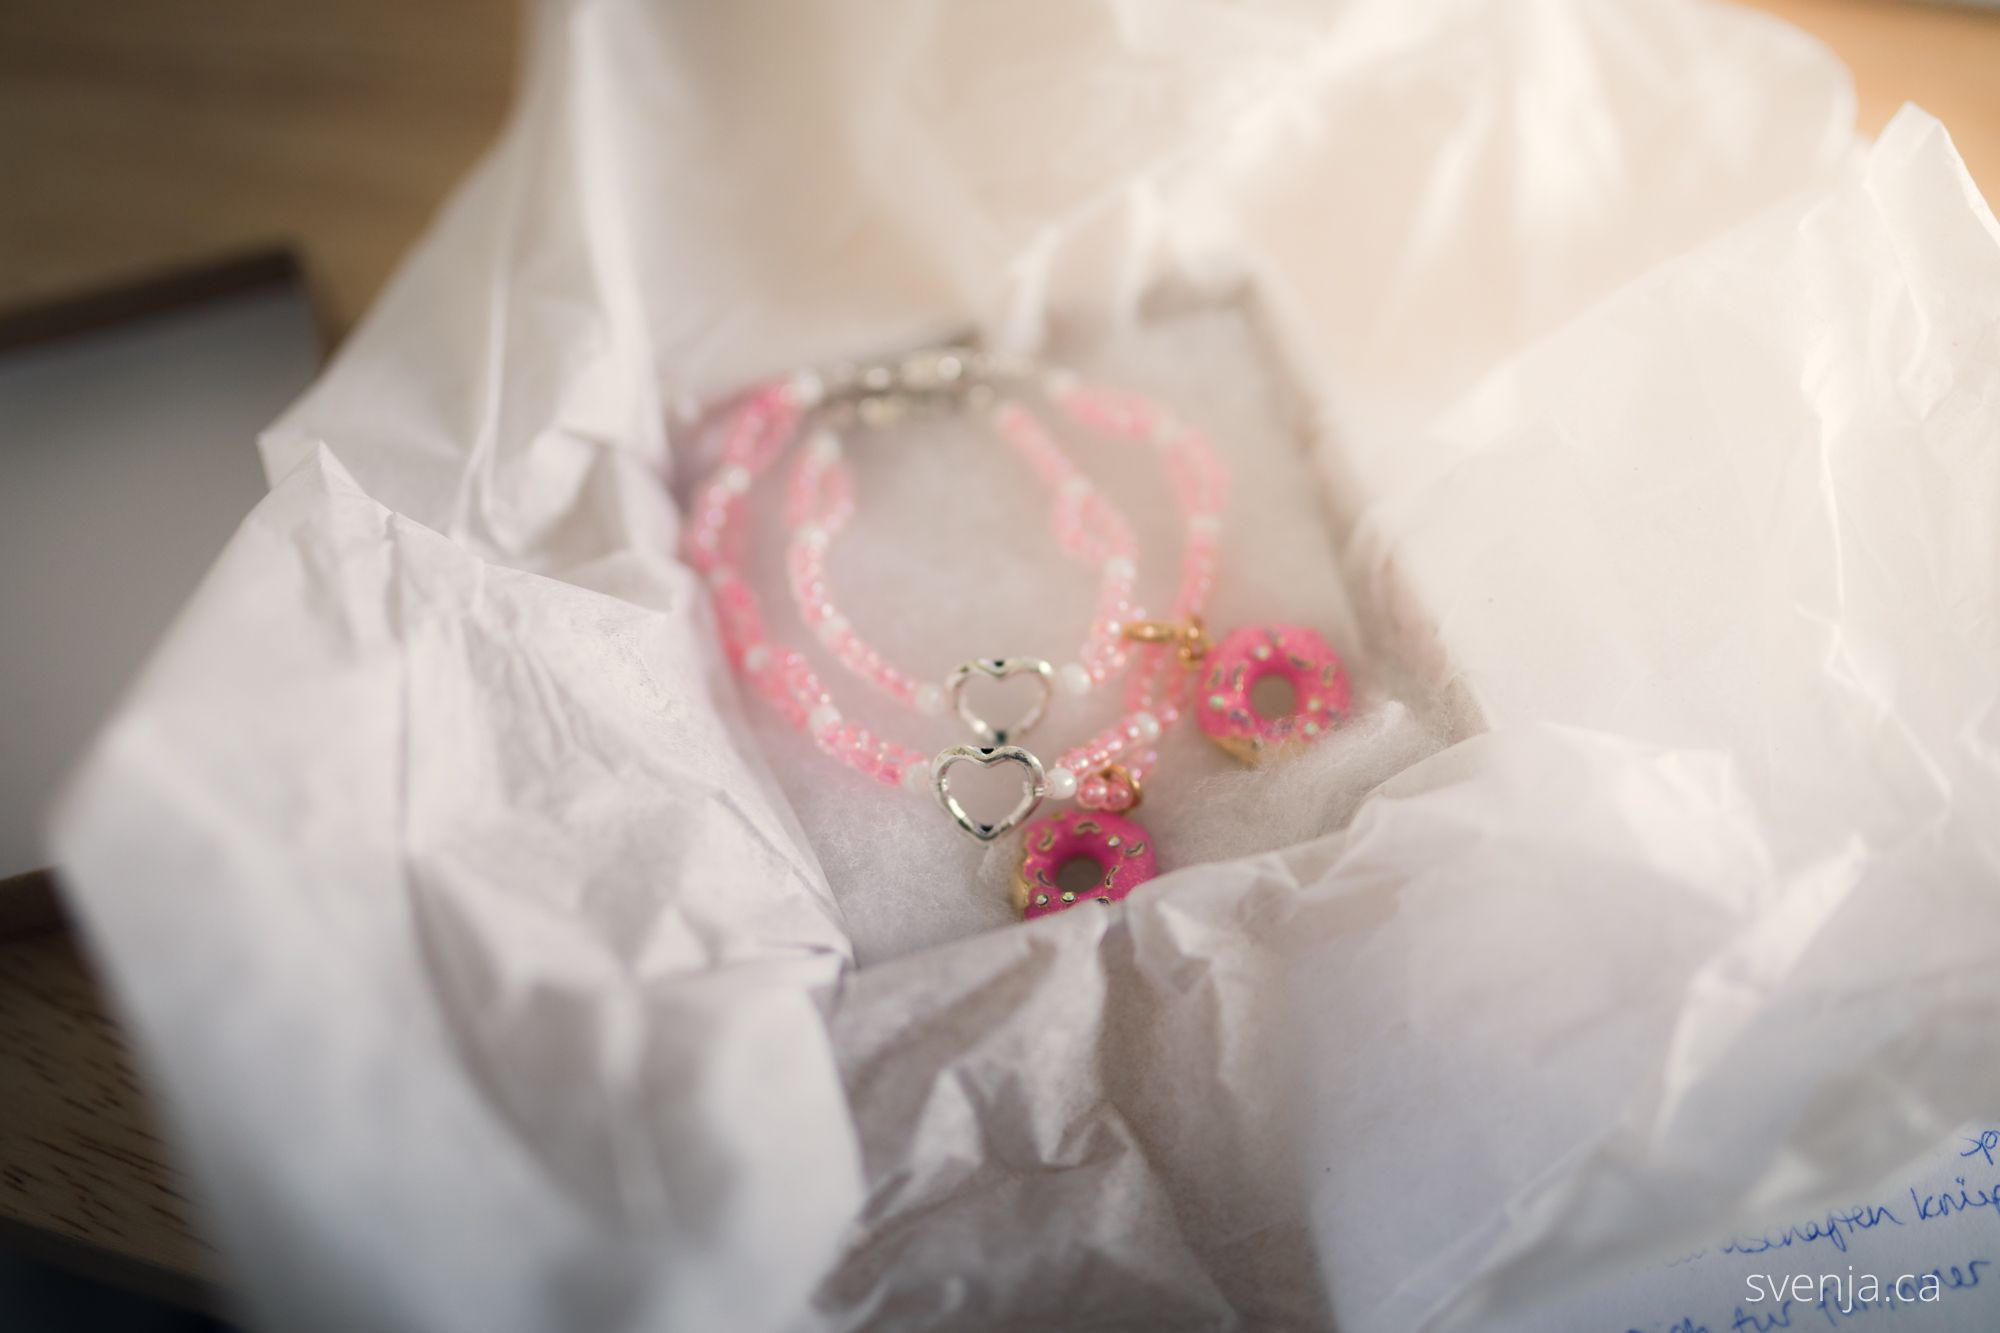 two bracelets lay in an opened box